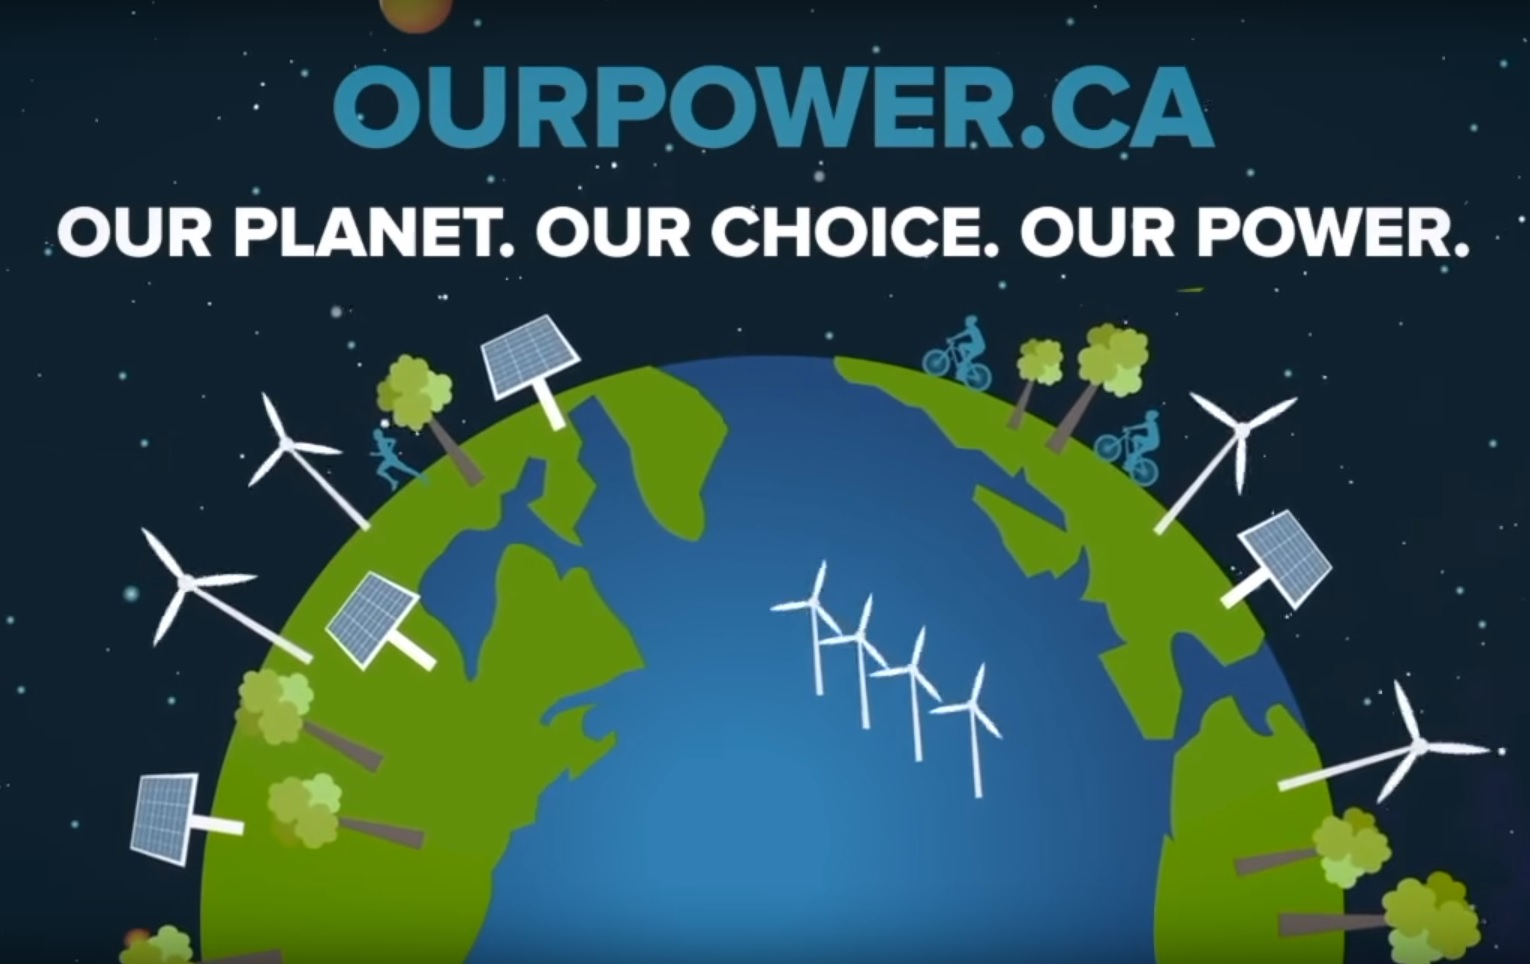 OUPOWER.CA OUR PLANET. OUR CHOICE. OUR POWER